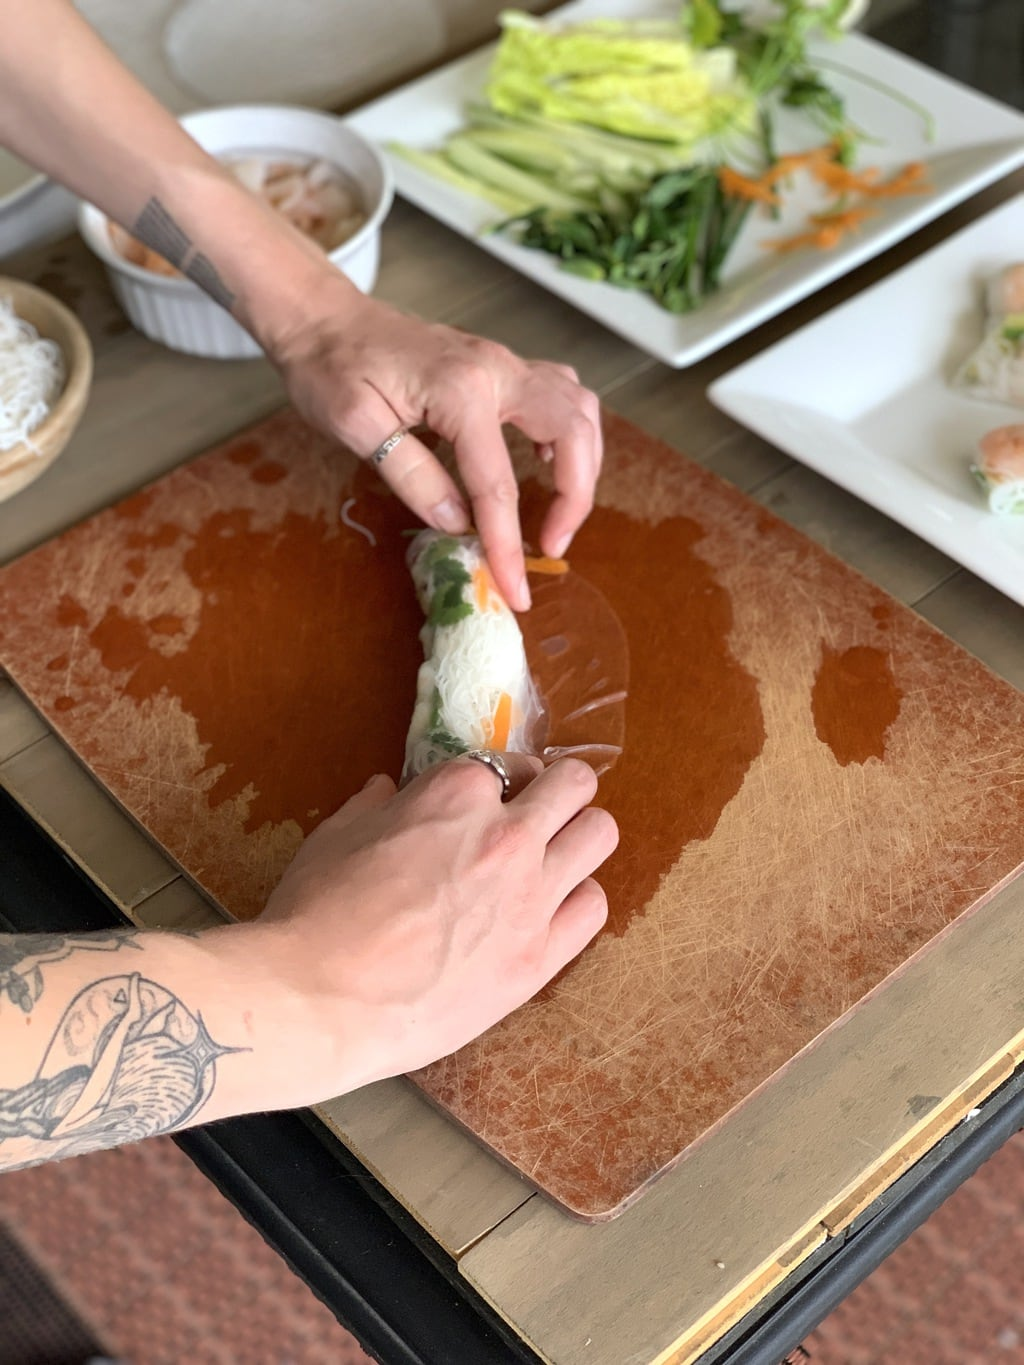 I learned to make Vietnamese shrimp summer rolls when I was in Vietnam last year with Holland America on a 20 day Southeast Asia cruise. It was a magical experience to say the least!